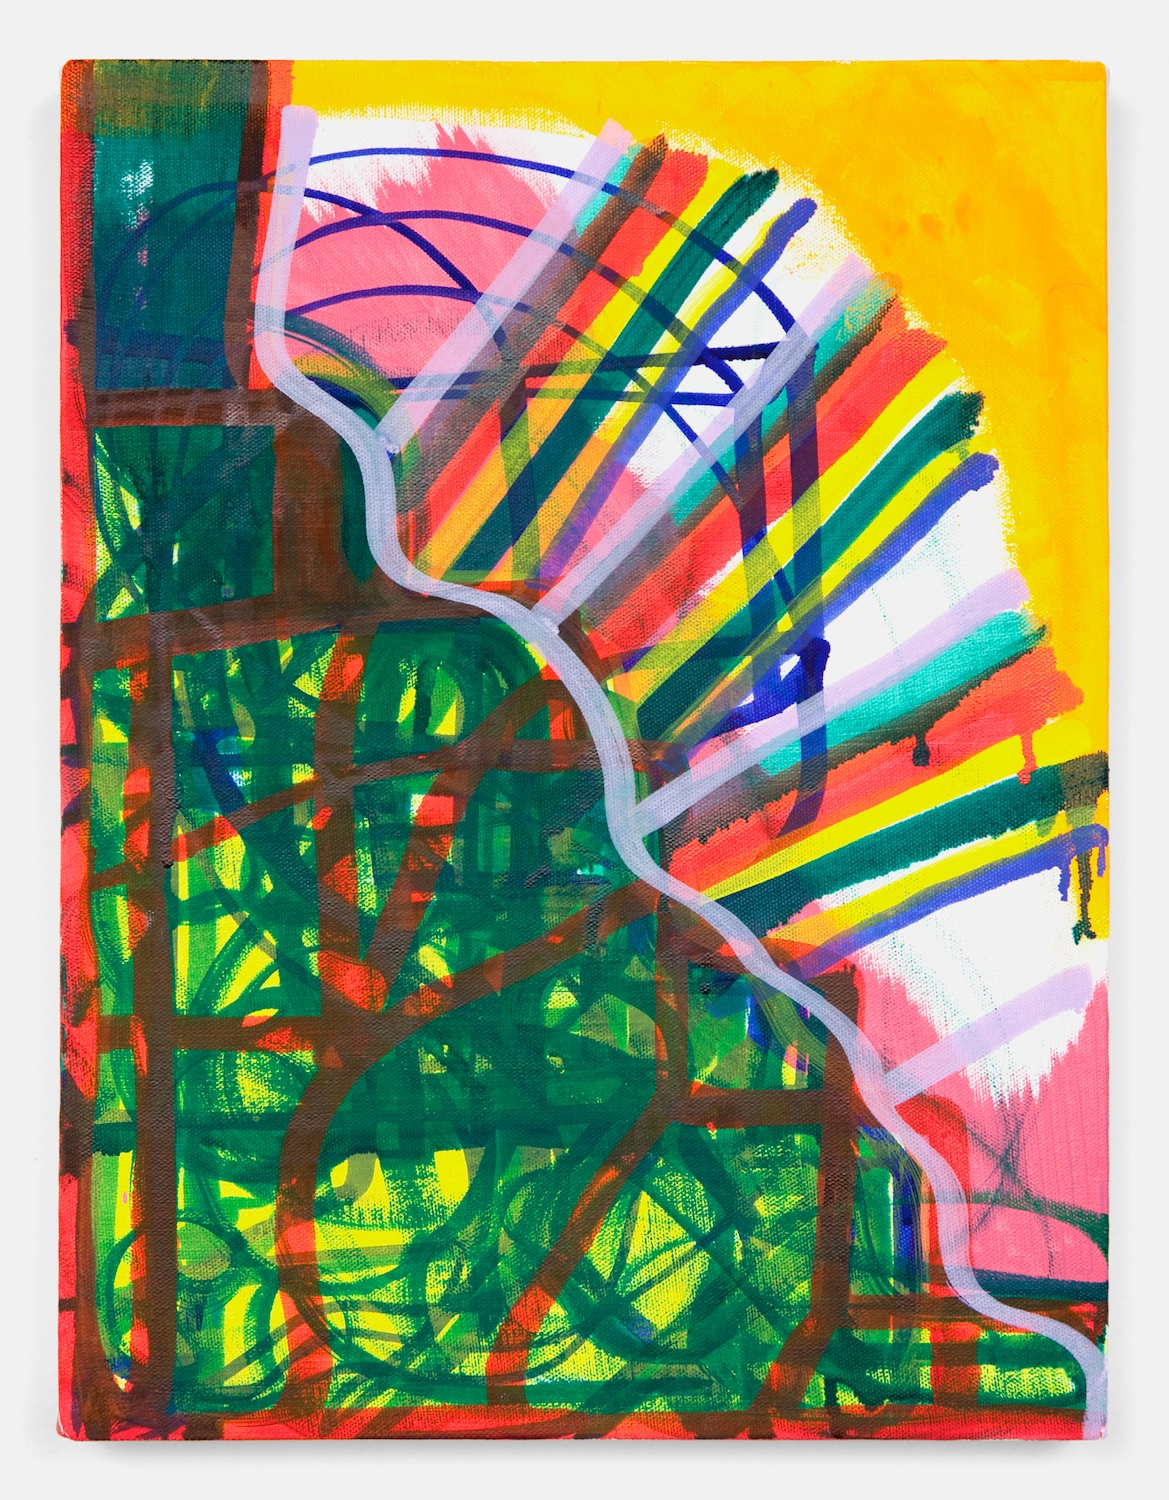 Joanne Greenbaum  Untitled  2011 Oil, acrylic and mixed media on linen 16h x 12w in JG054